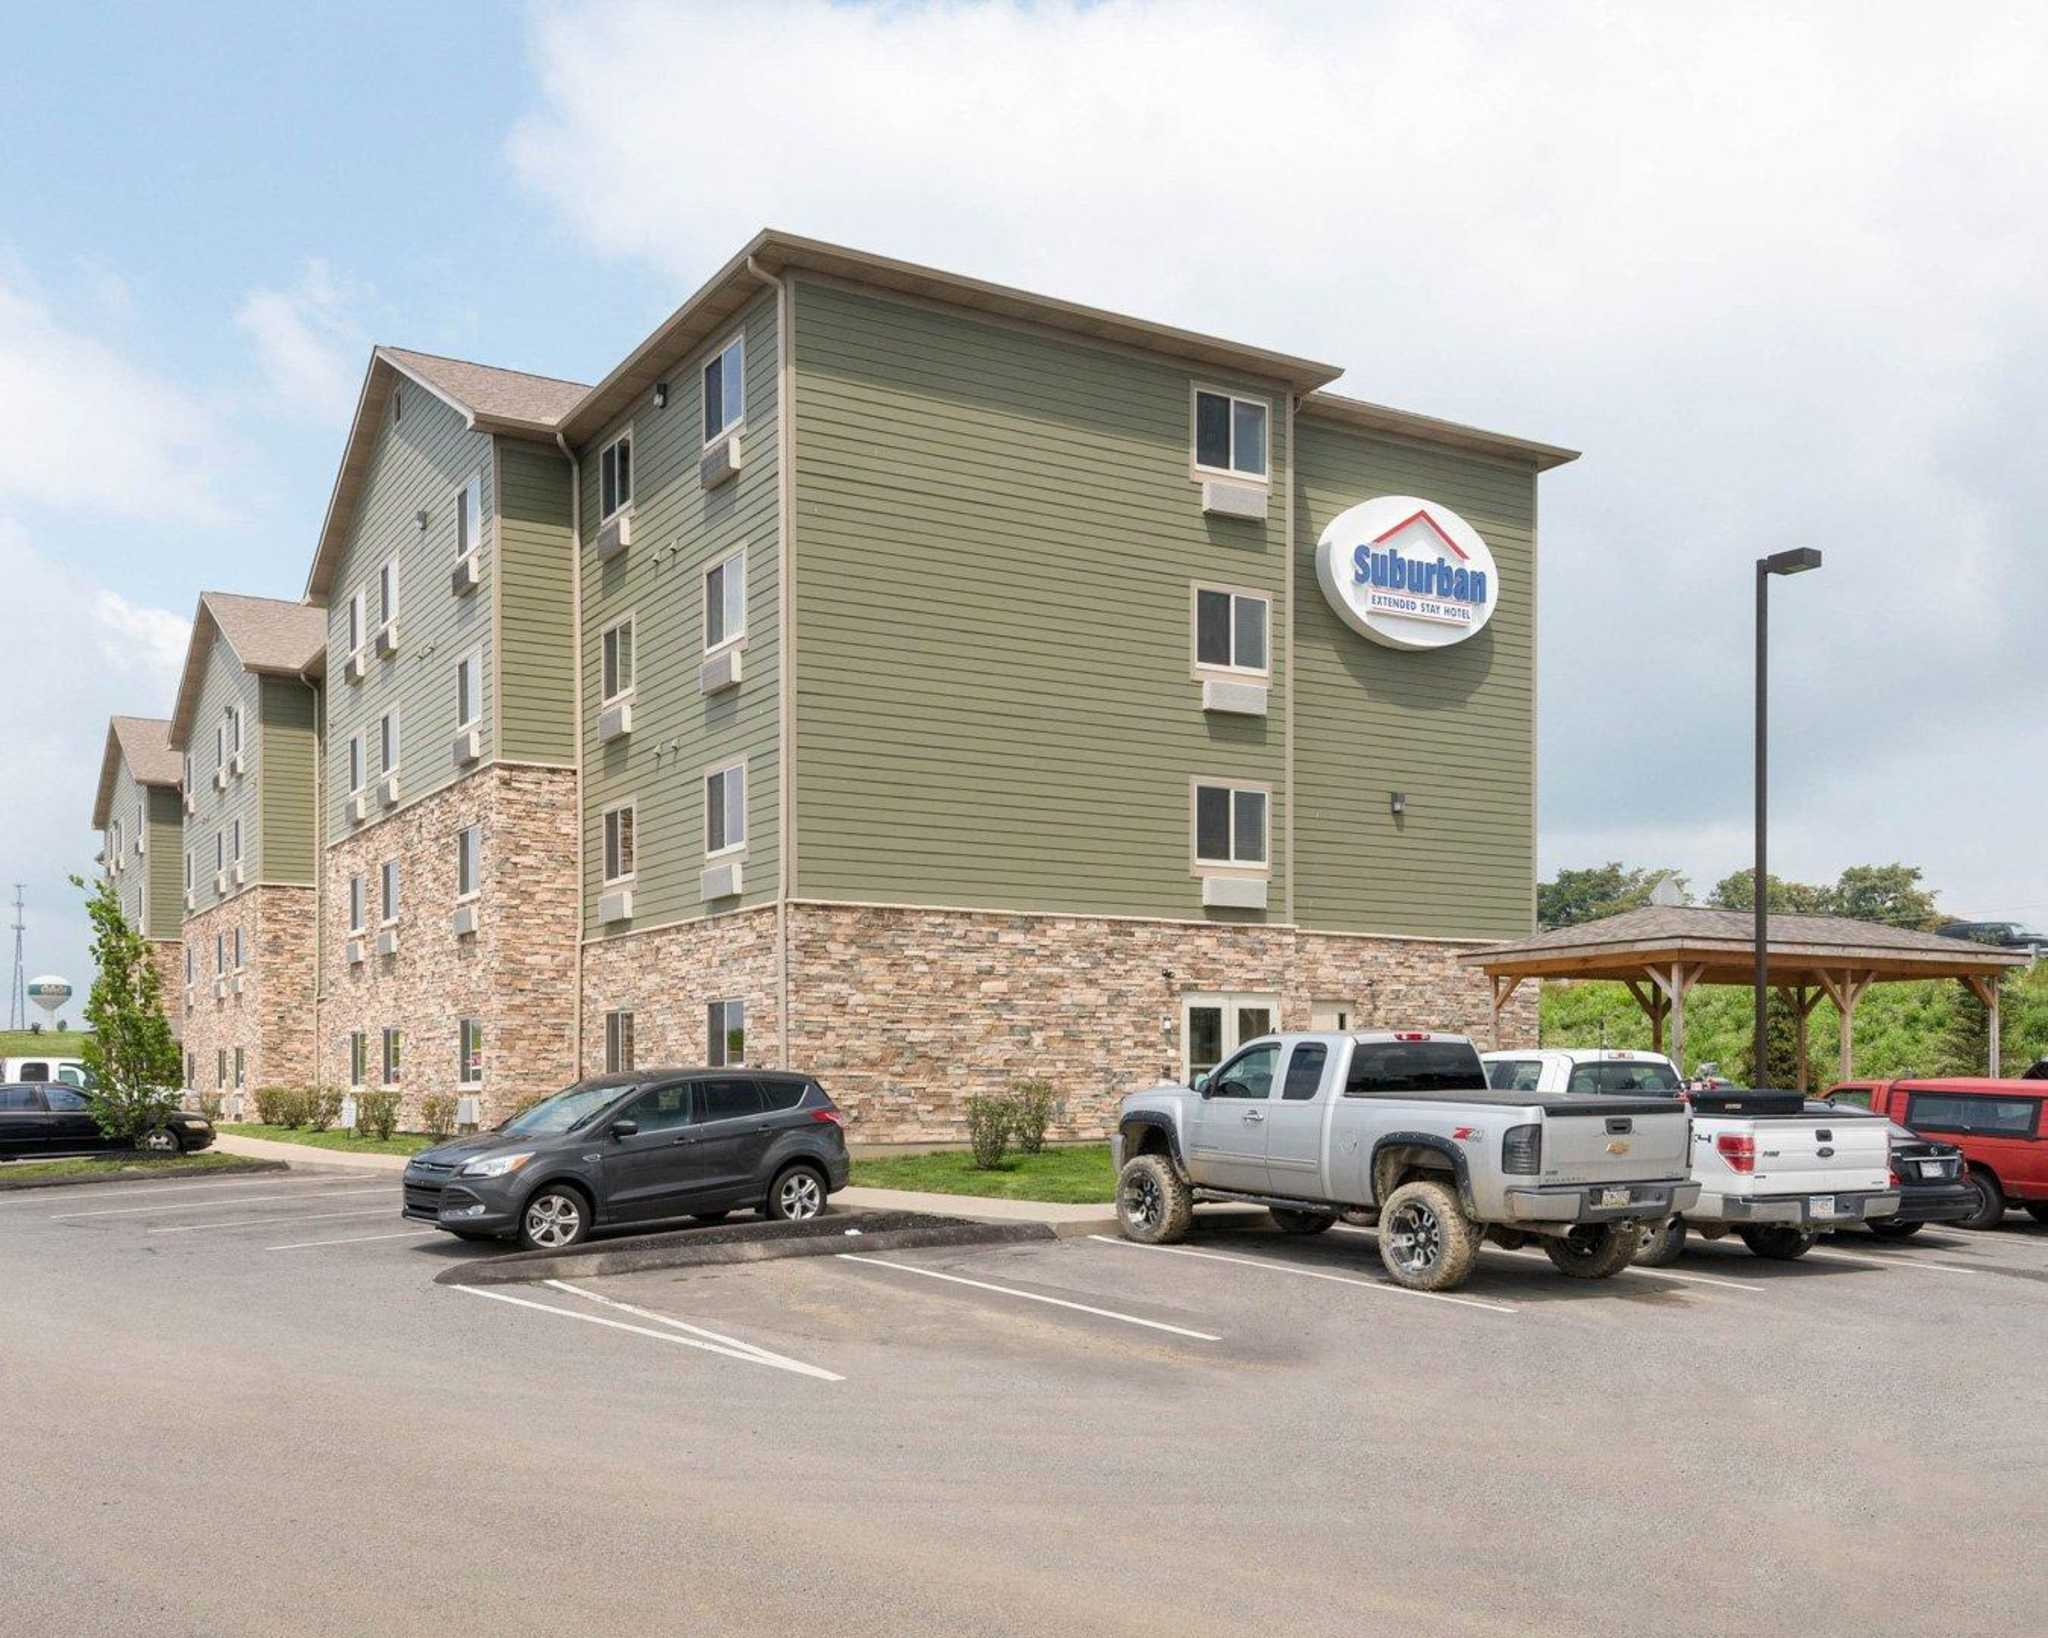 Suburban Extended Stay Hotel image 2